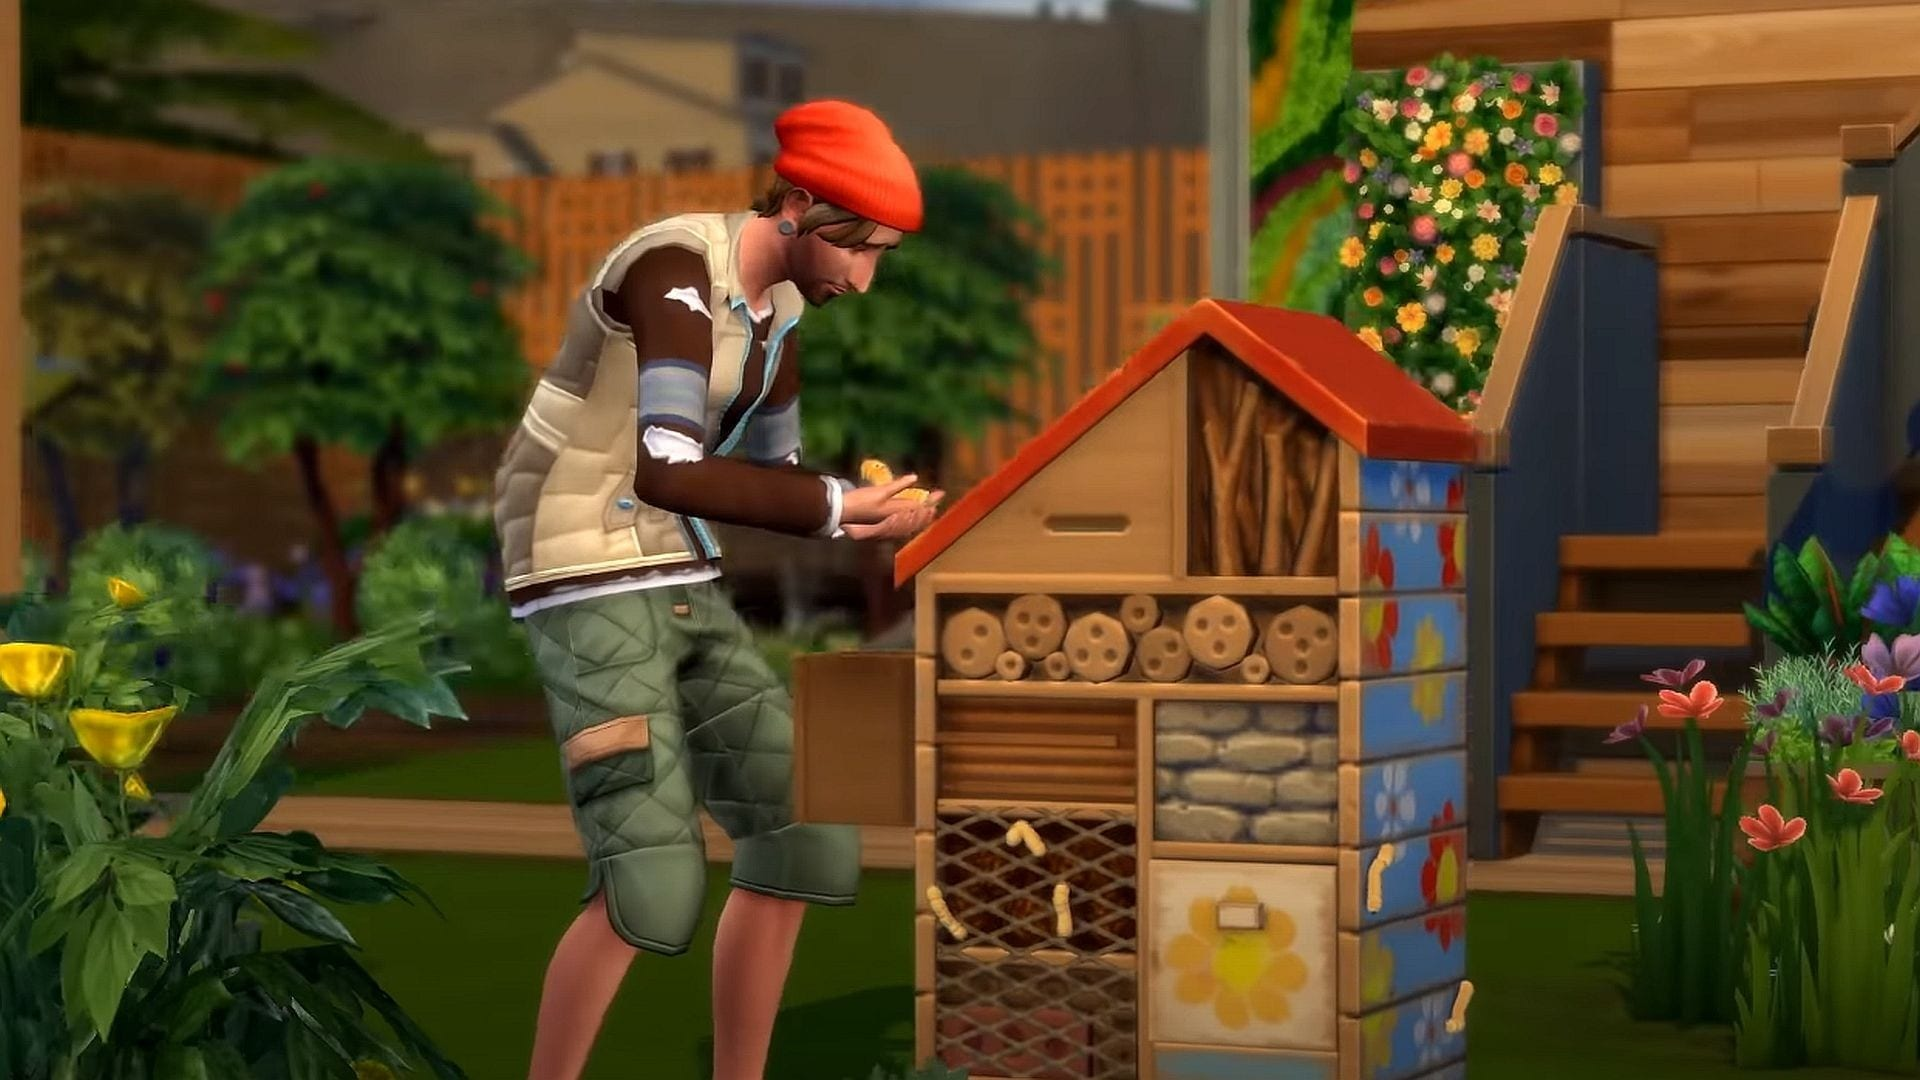 sims 4 eco lifestyle dumpster diving